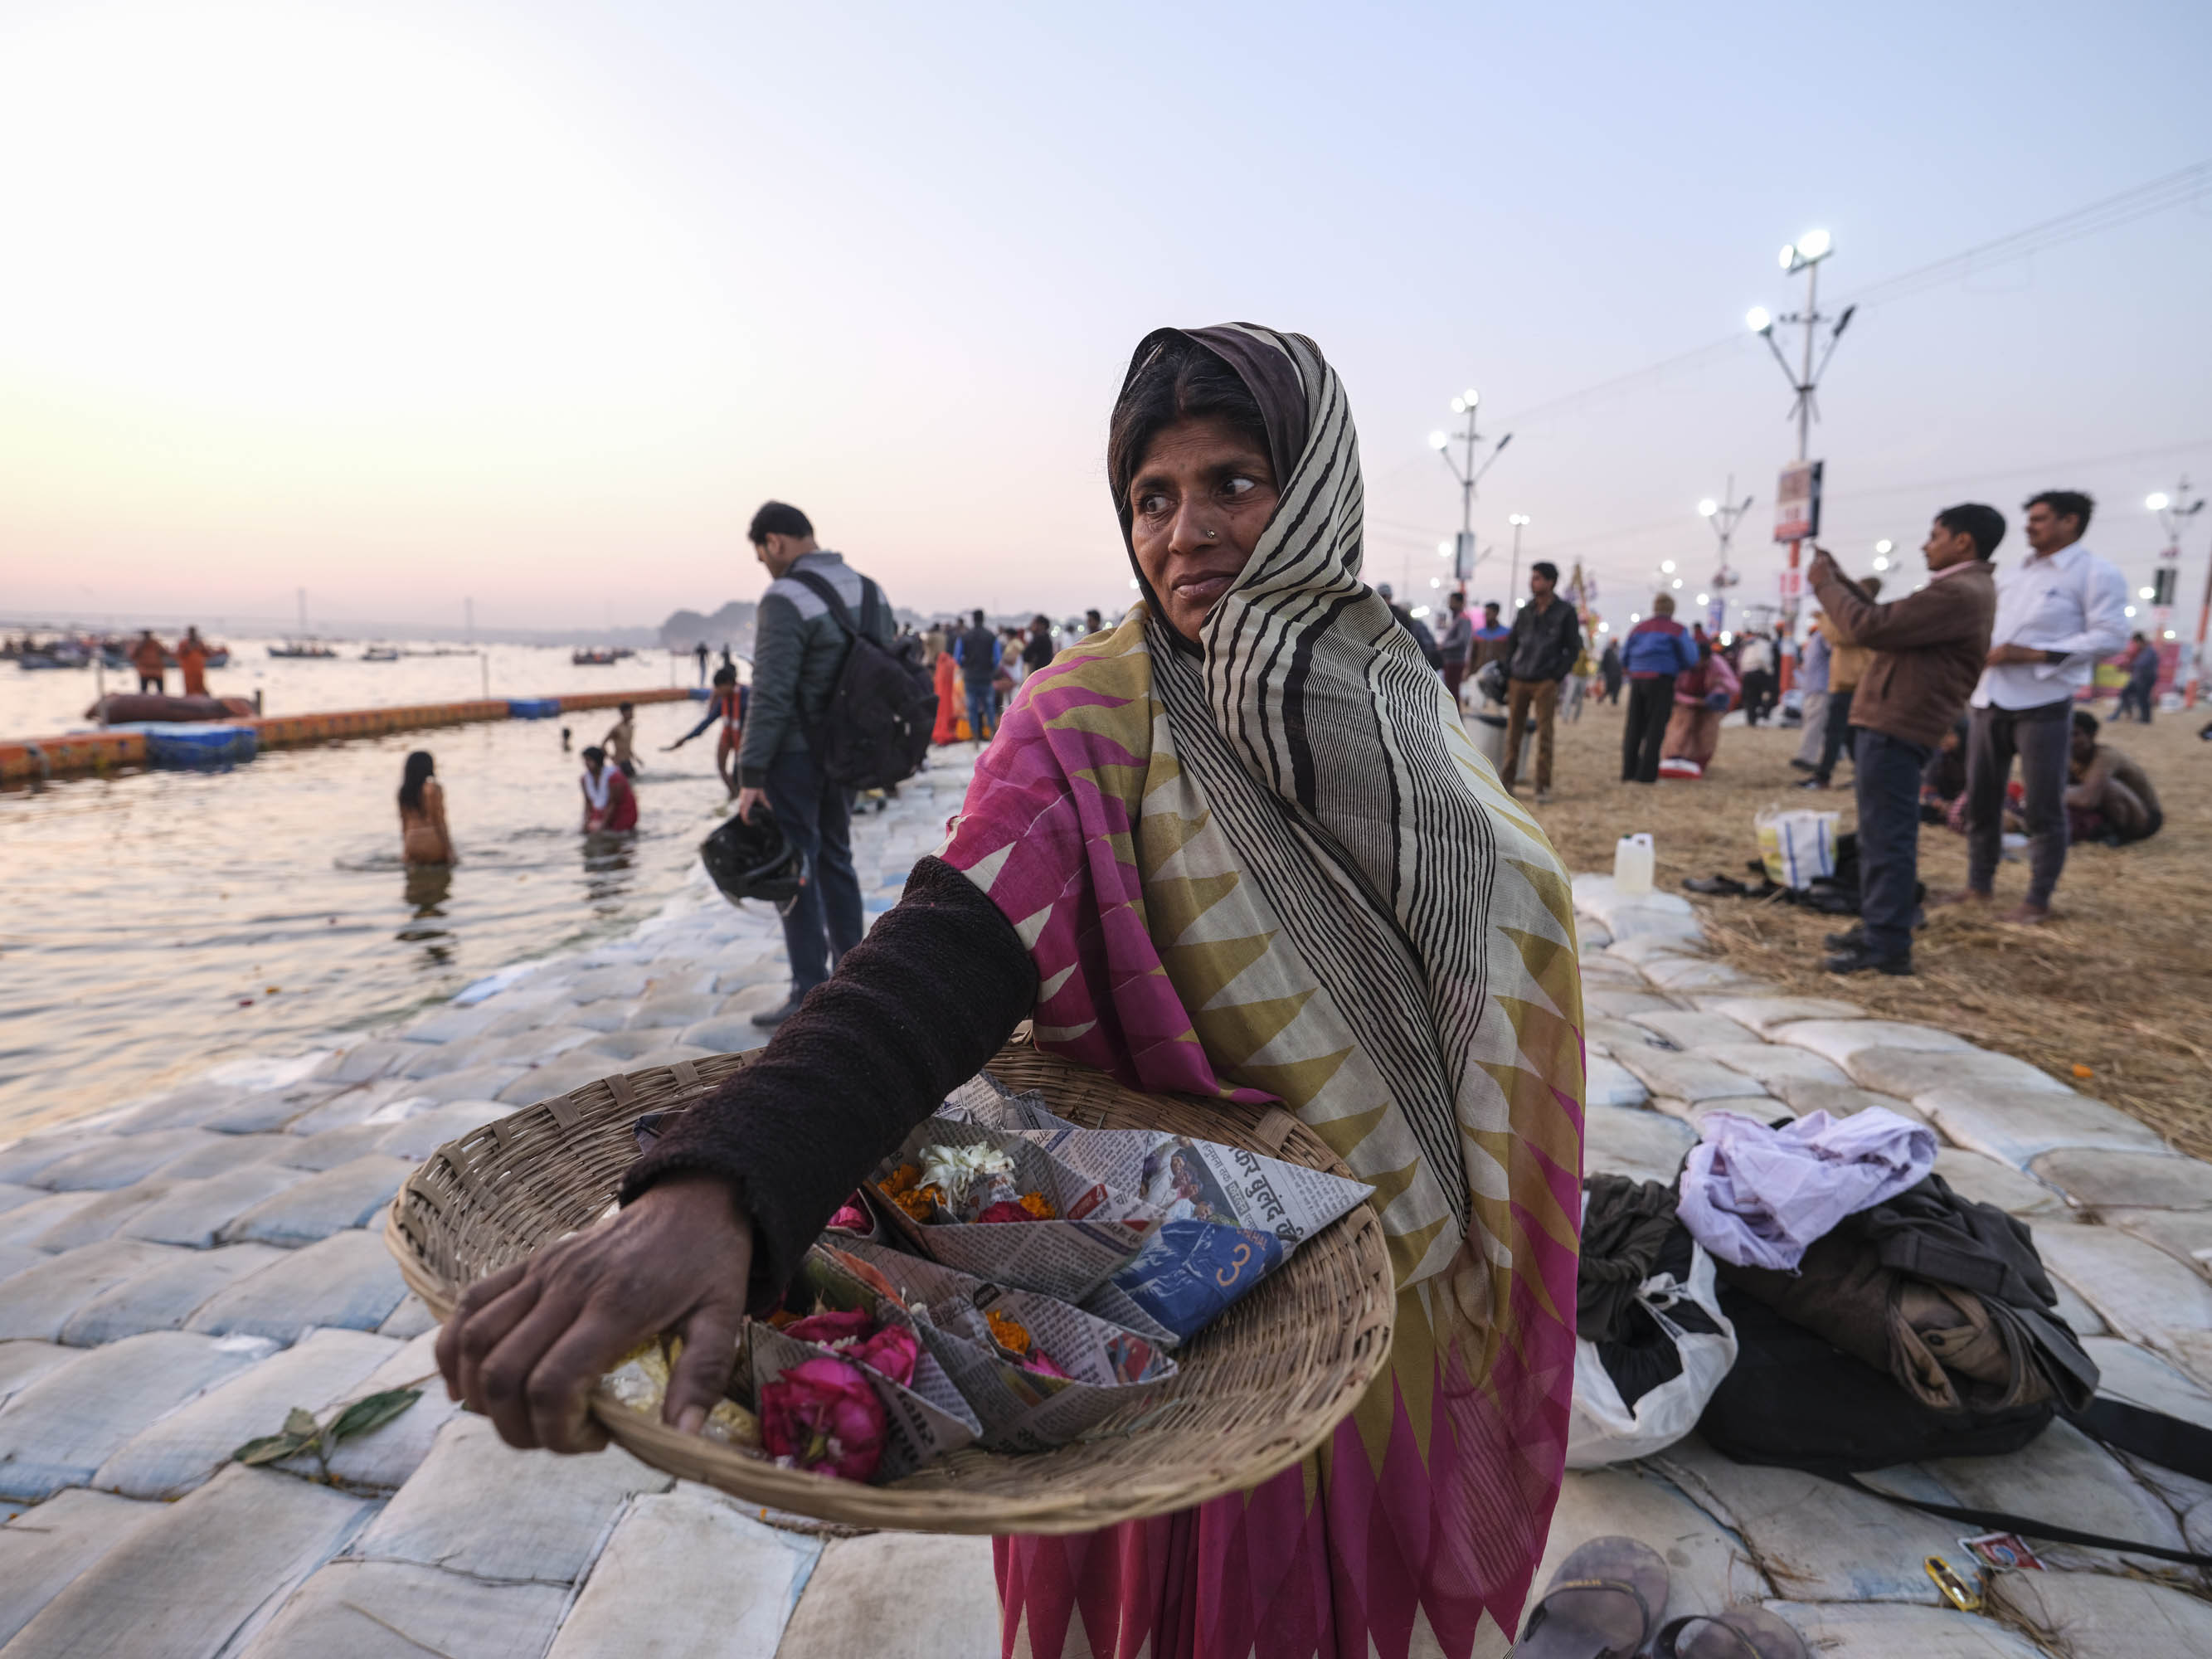 flower by the water bath offering pilgrims Kumbh mela 2019 India Allahabad Prayagraj Ardh hindu religious Festival event rivers photographer jose jeuland photography